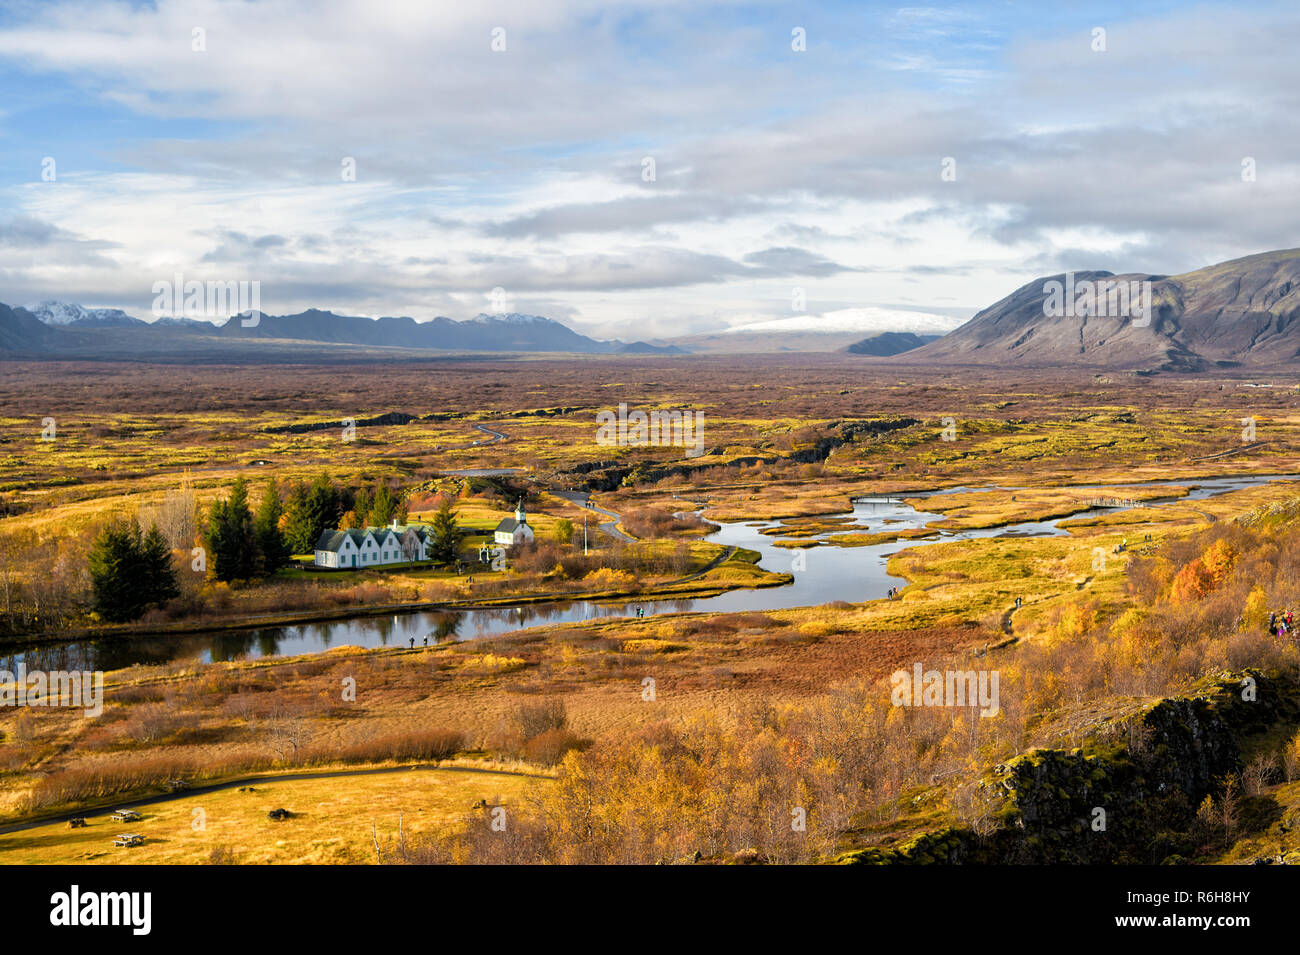 Haukadalur valley in Iceland. Beautiful landscape with river in valley. Little buildings in peaceful nature environment. Valley landscape sunny autumn day cloudy sky. Amazing beauty of valley. Stock Photo